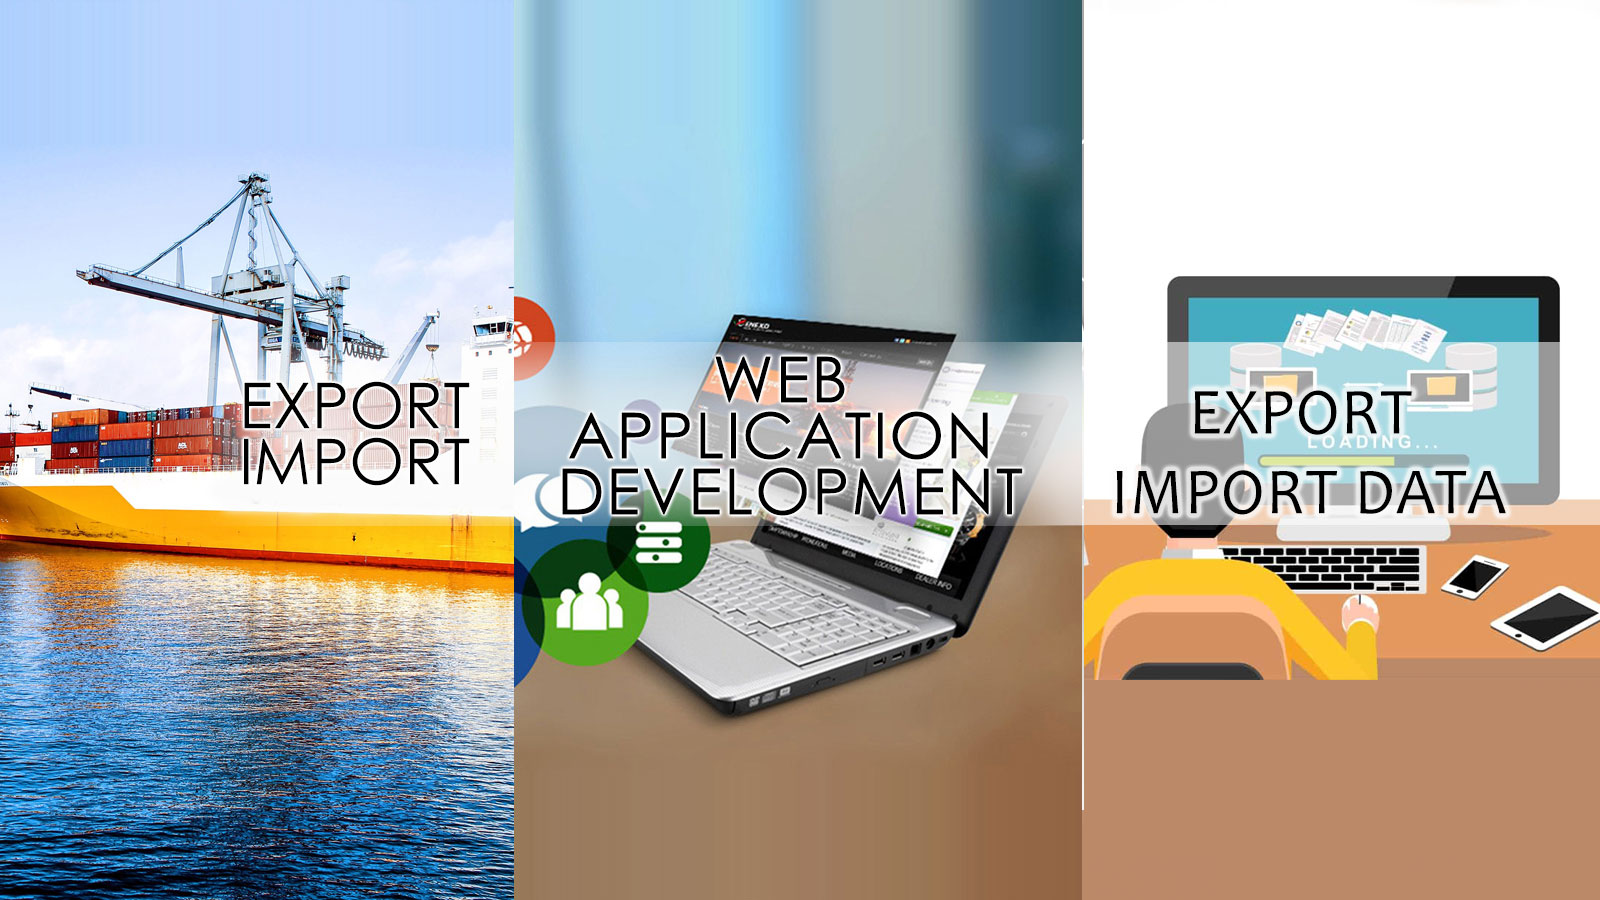 Web Application Development Slider